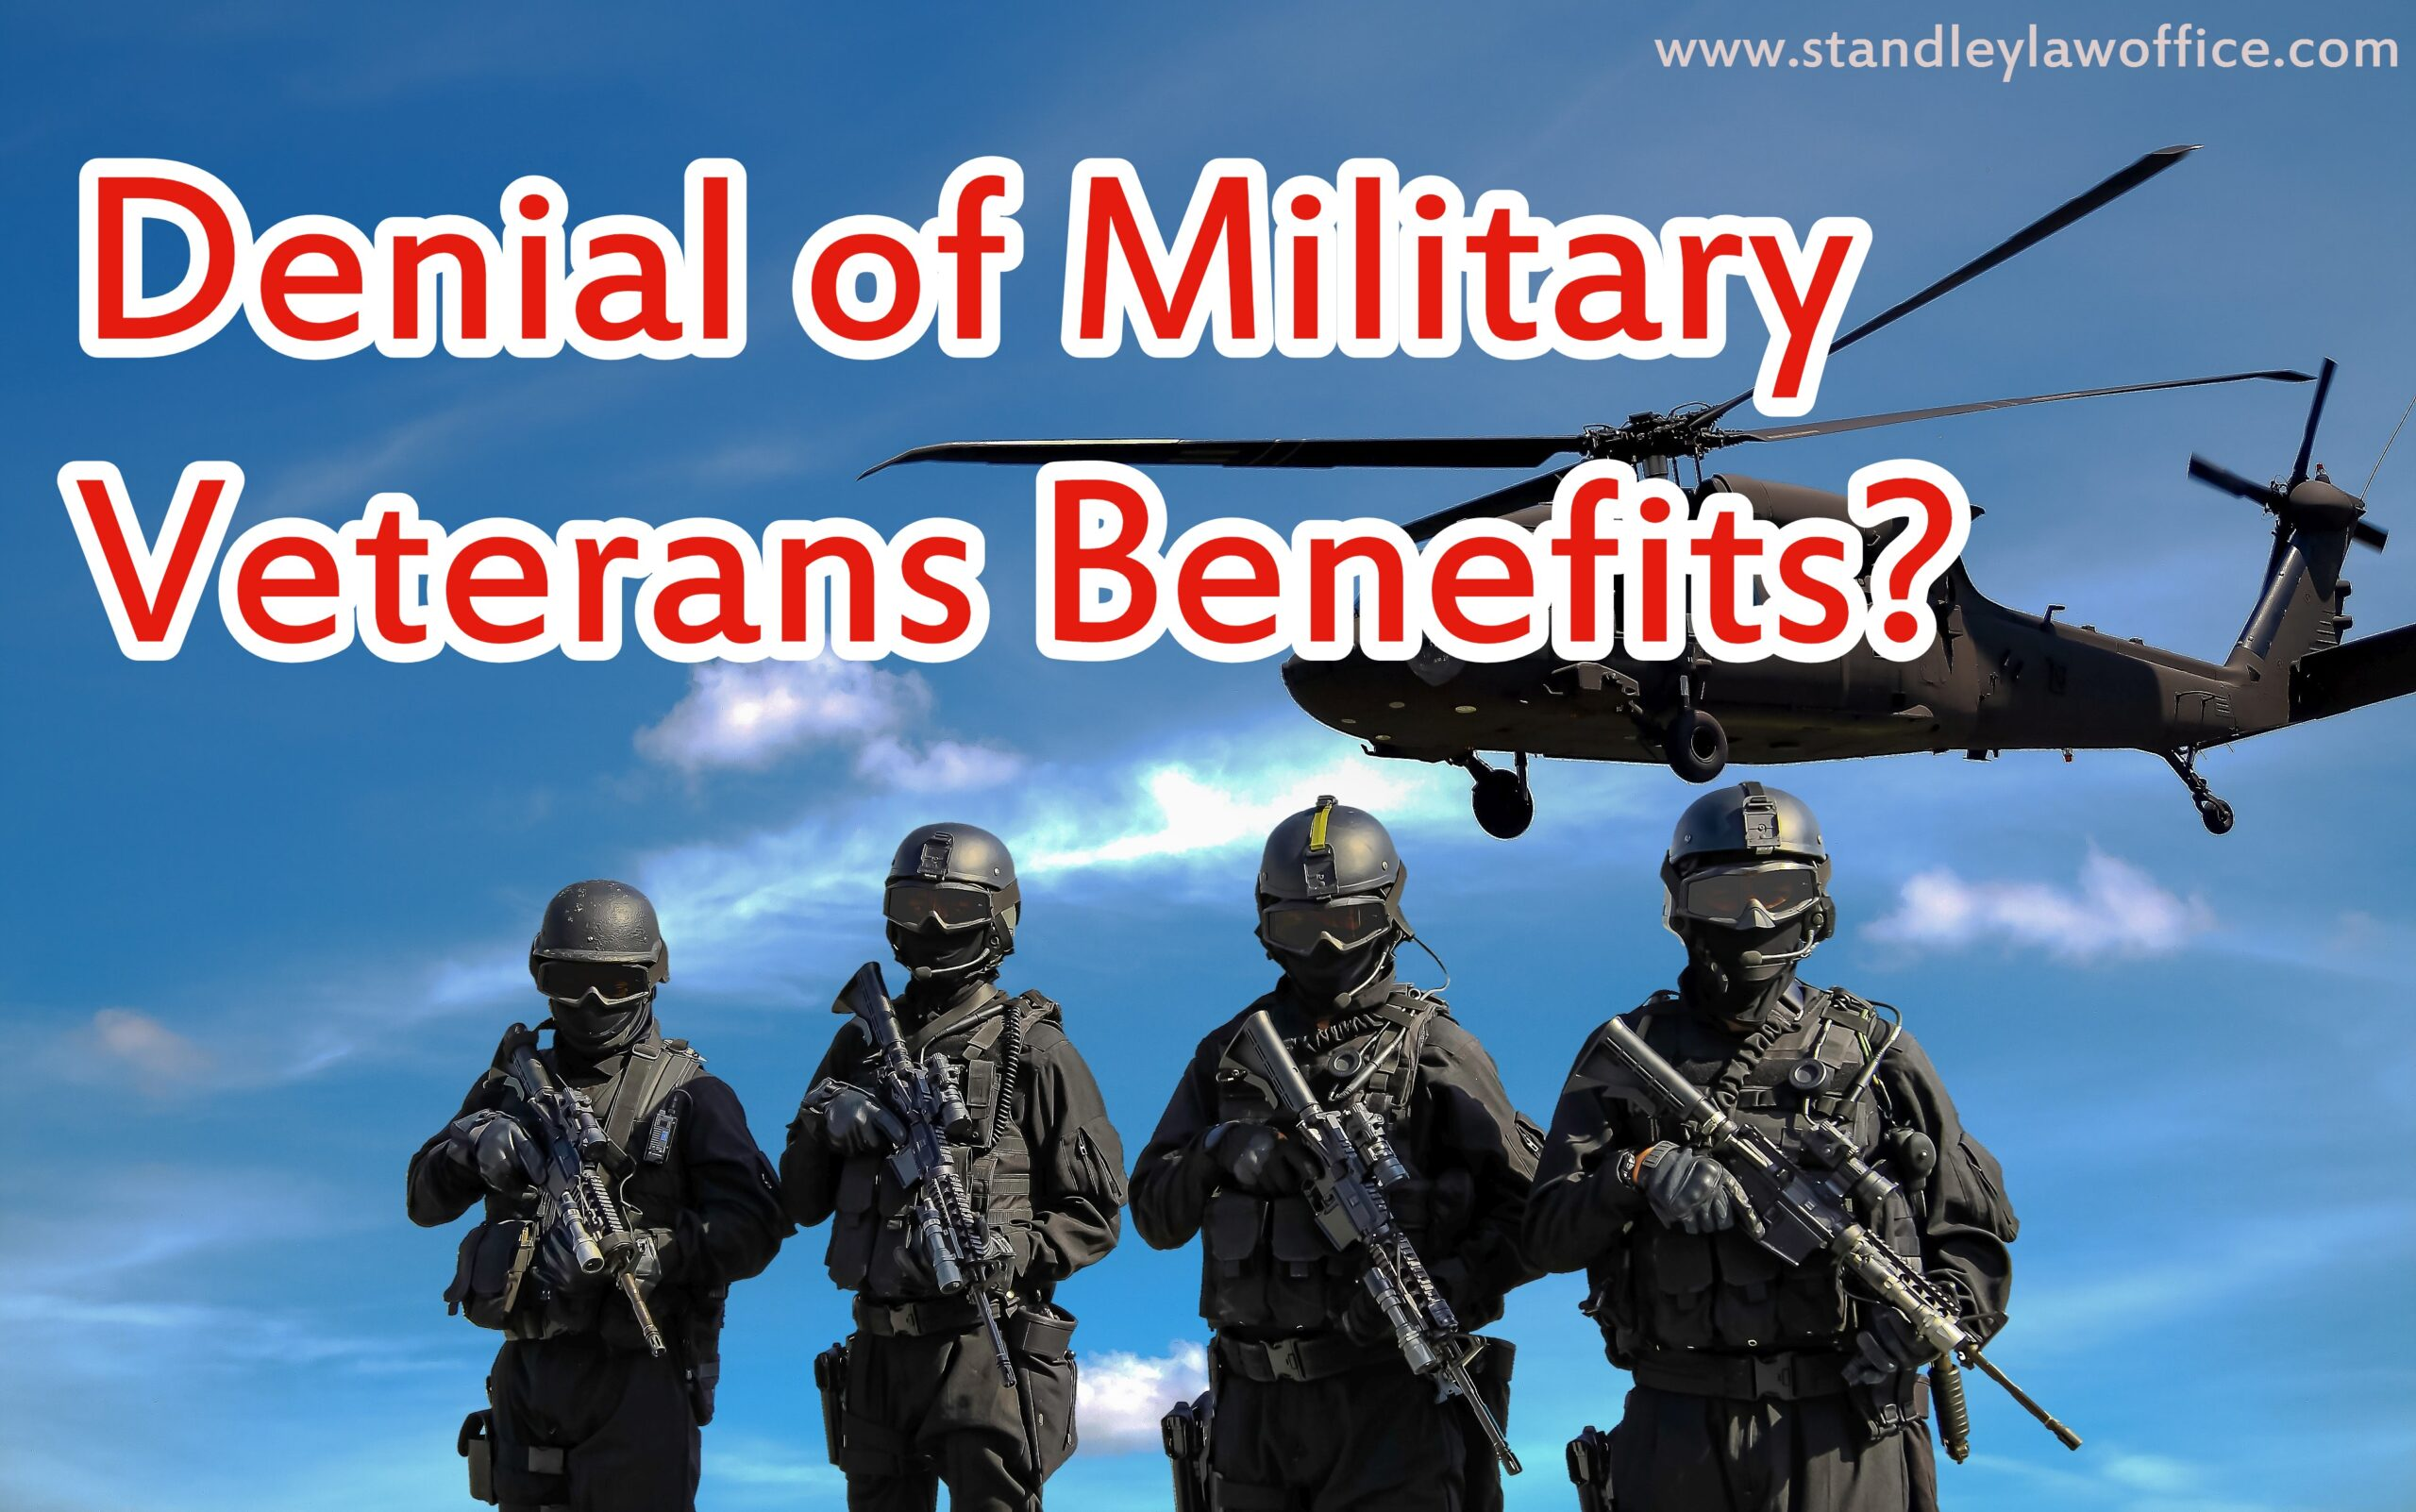 Denial of Military Veterans Benefits – Standley Law office